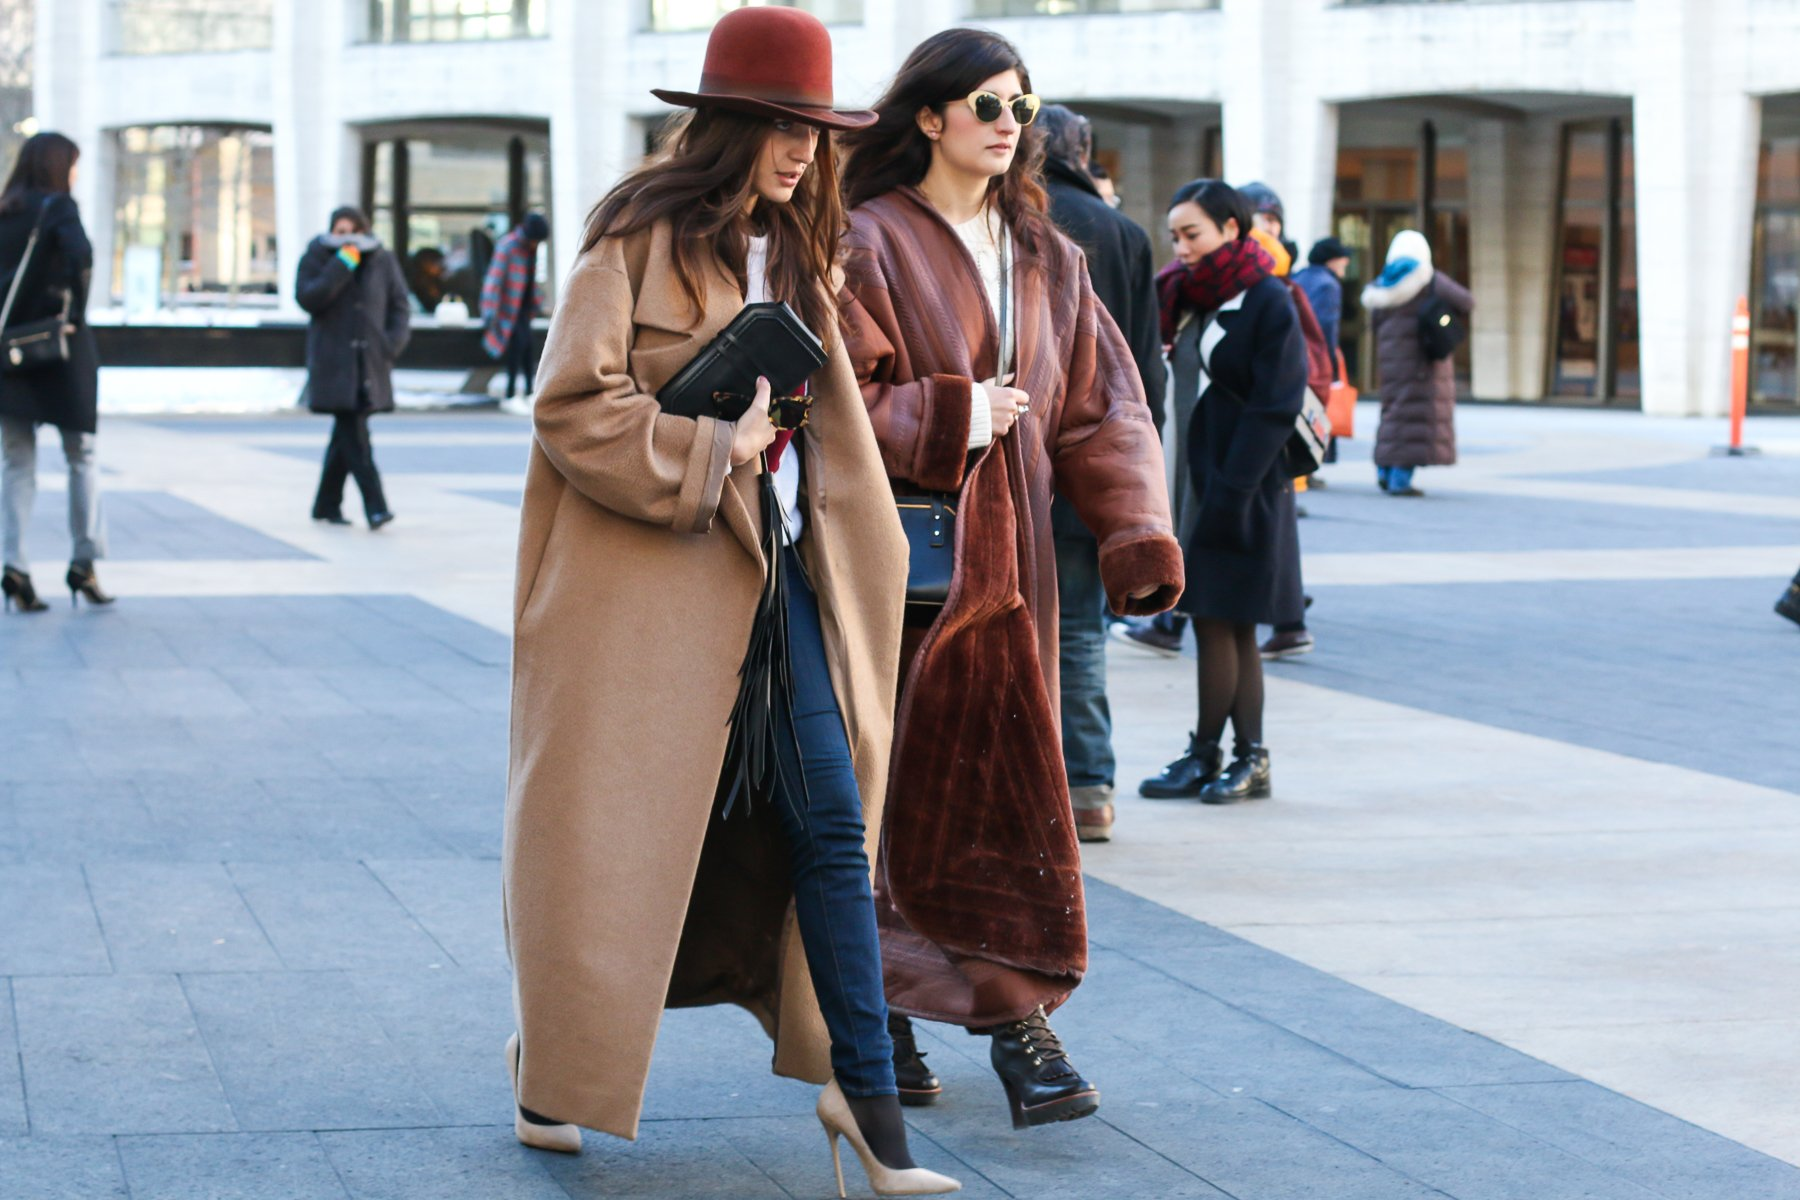 new-york-fashion-week-lincoln-center-nyc-streetstyle-photography-by-ryan-chua-6411